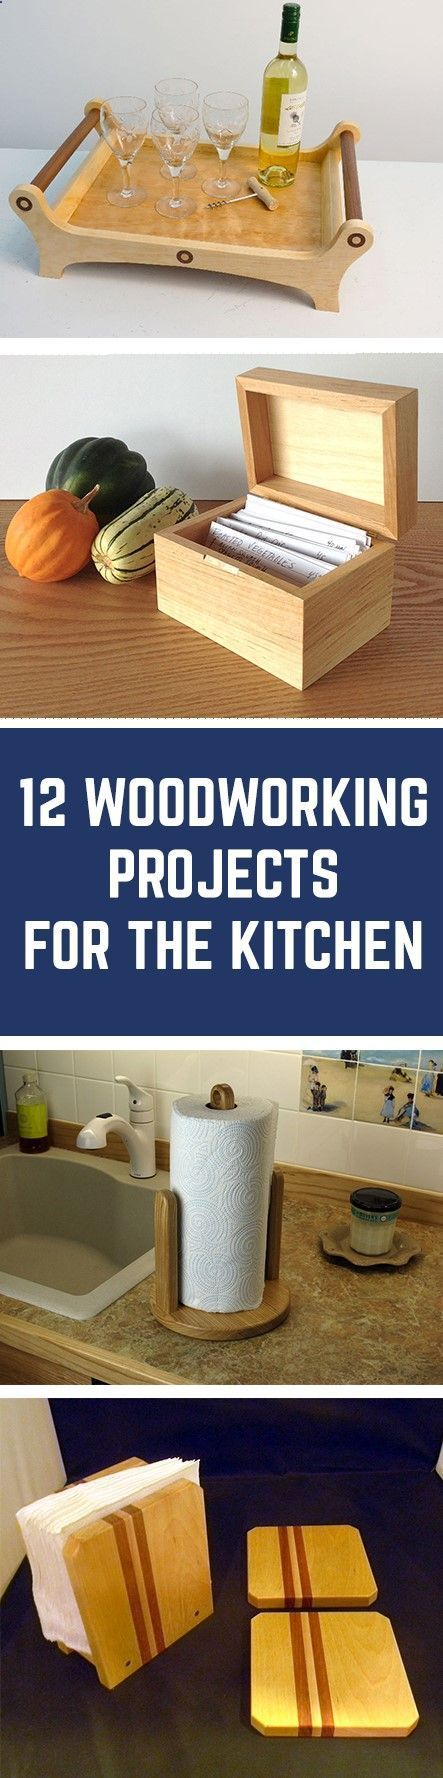 Wood Profit - Woodworking - 12 Woodworking Project and Gift Ideas for the Kitchen | WWGOA Discover How You Can Start A Woodworking Business From Home Easily in 7 Days With NO Capital Needed!